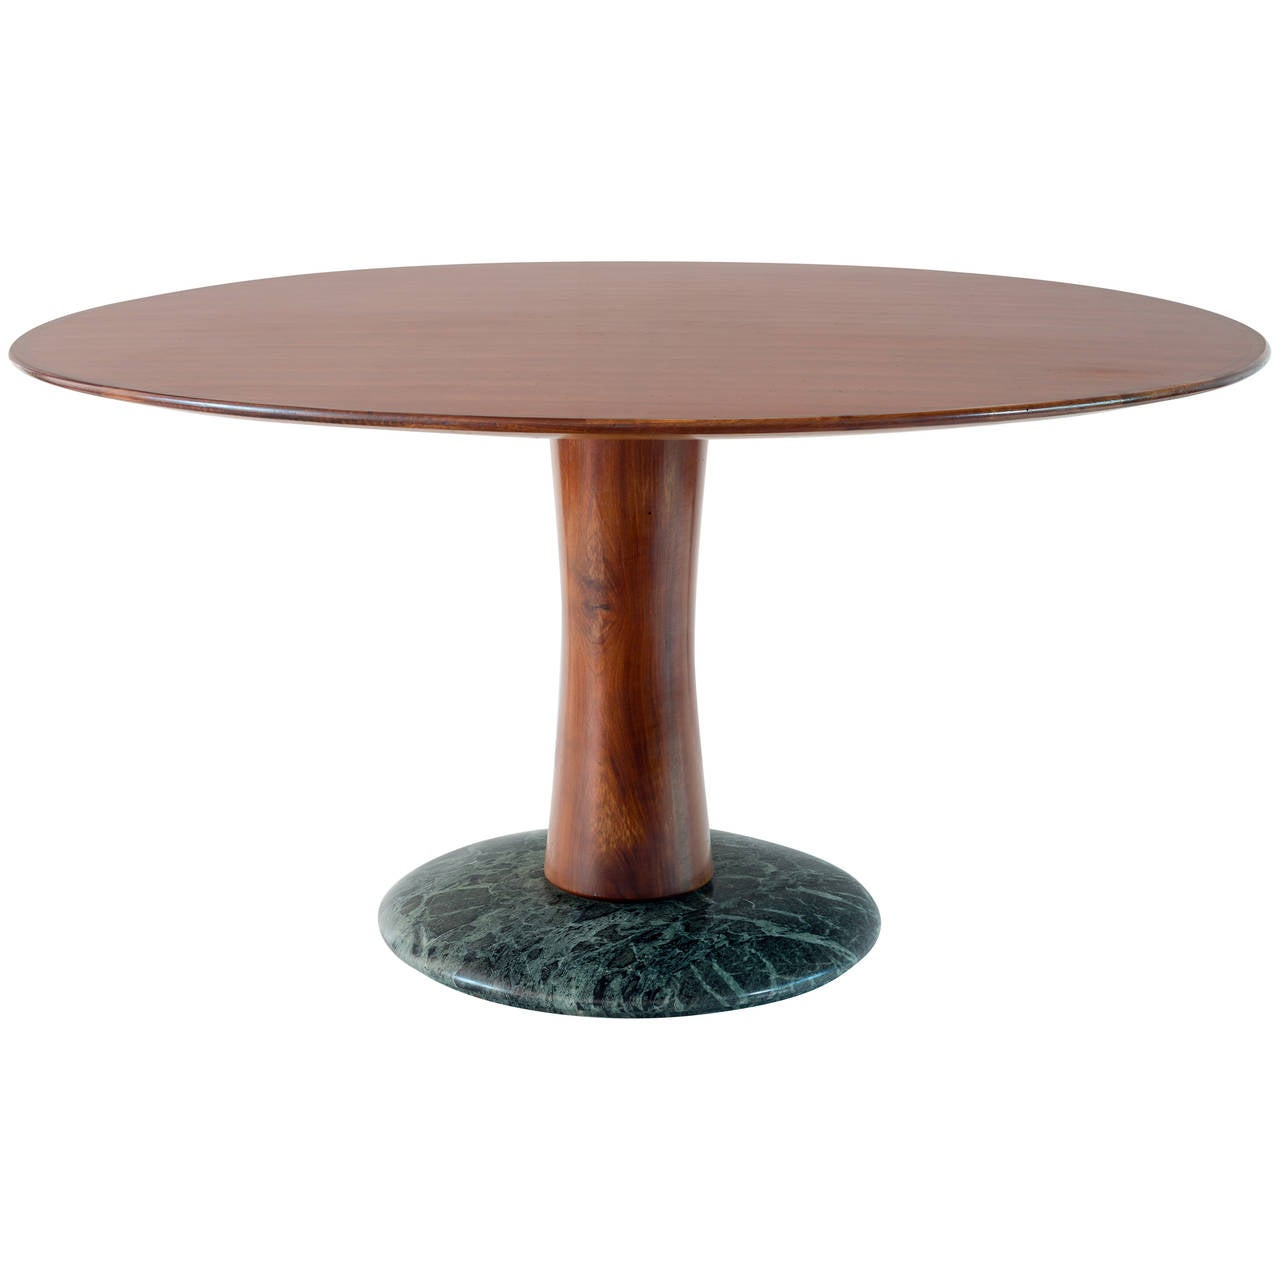 1950 Dining Room Furniture Paolo Buffa Round Dining Table 1950 At 1stdibs